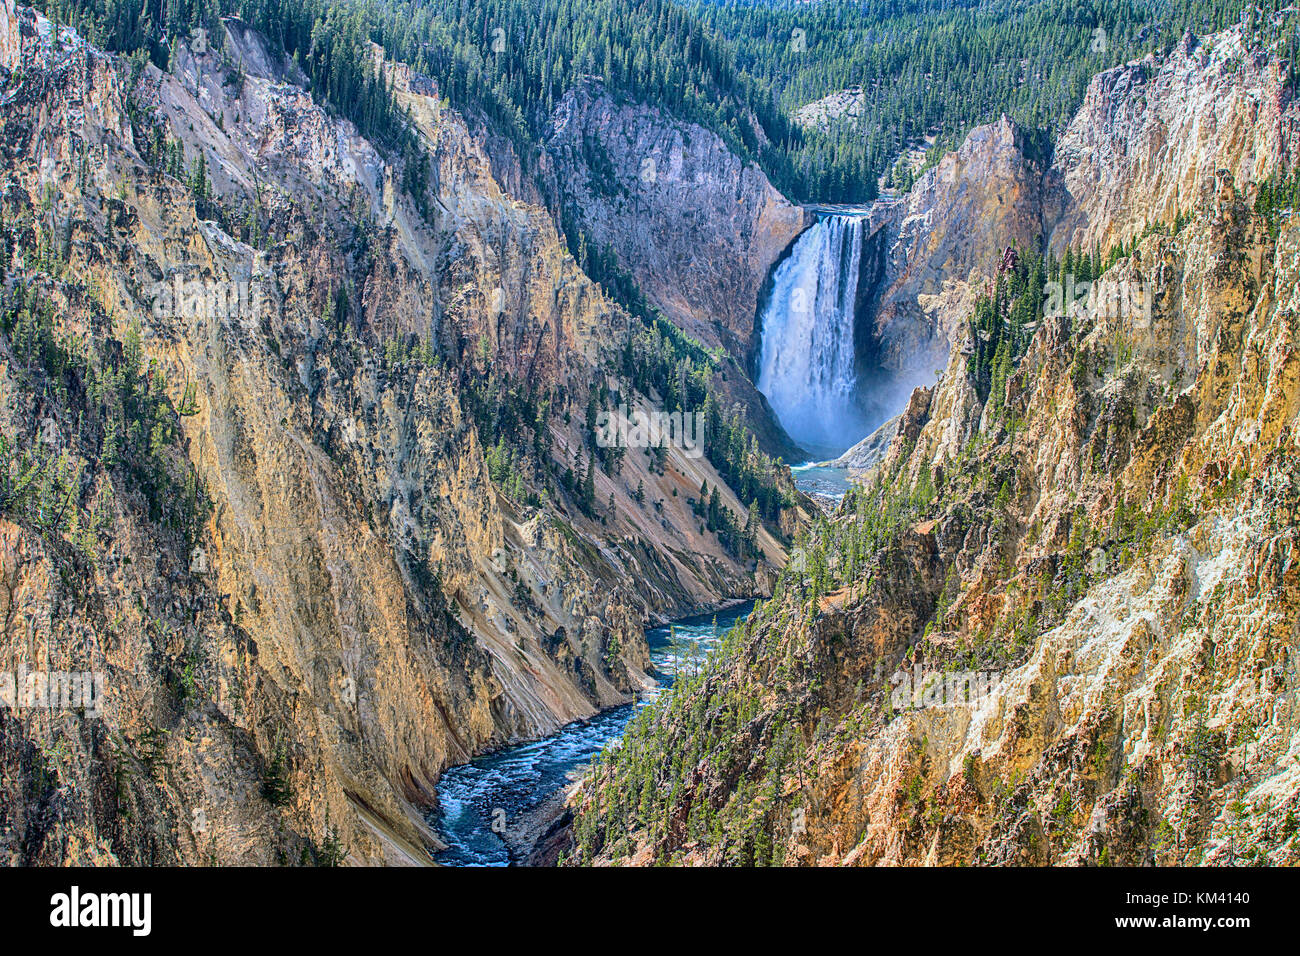 Yellowstone canyon sur la rivière Yellowstone vu de l'artiste 'point', Wyoming, USA Photo Stock